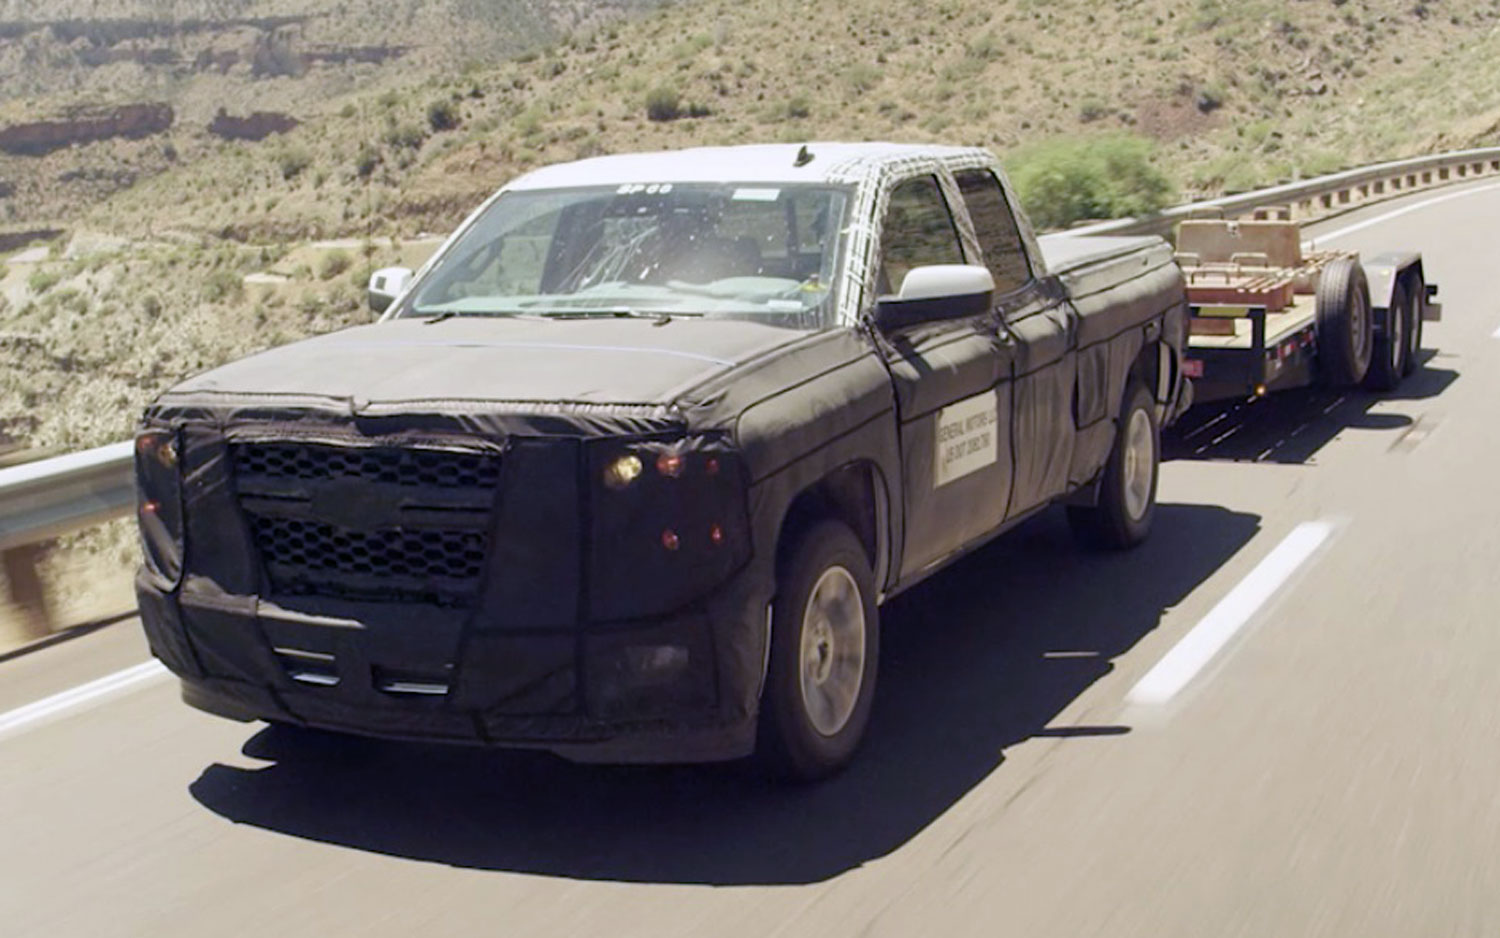 2014 Chevrolet Silverado Teaser With Trailer Front View1